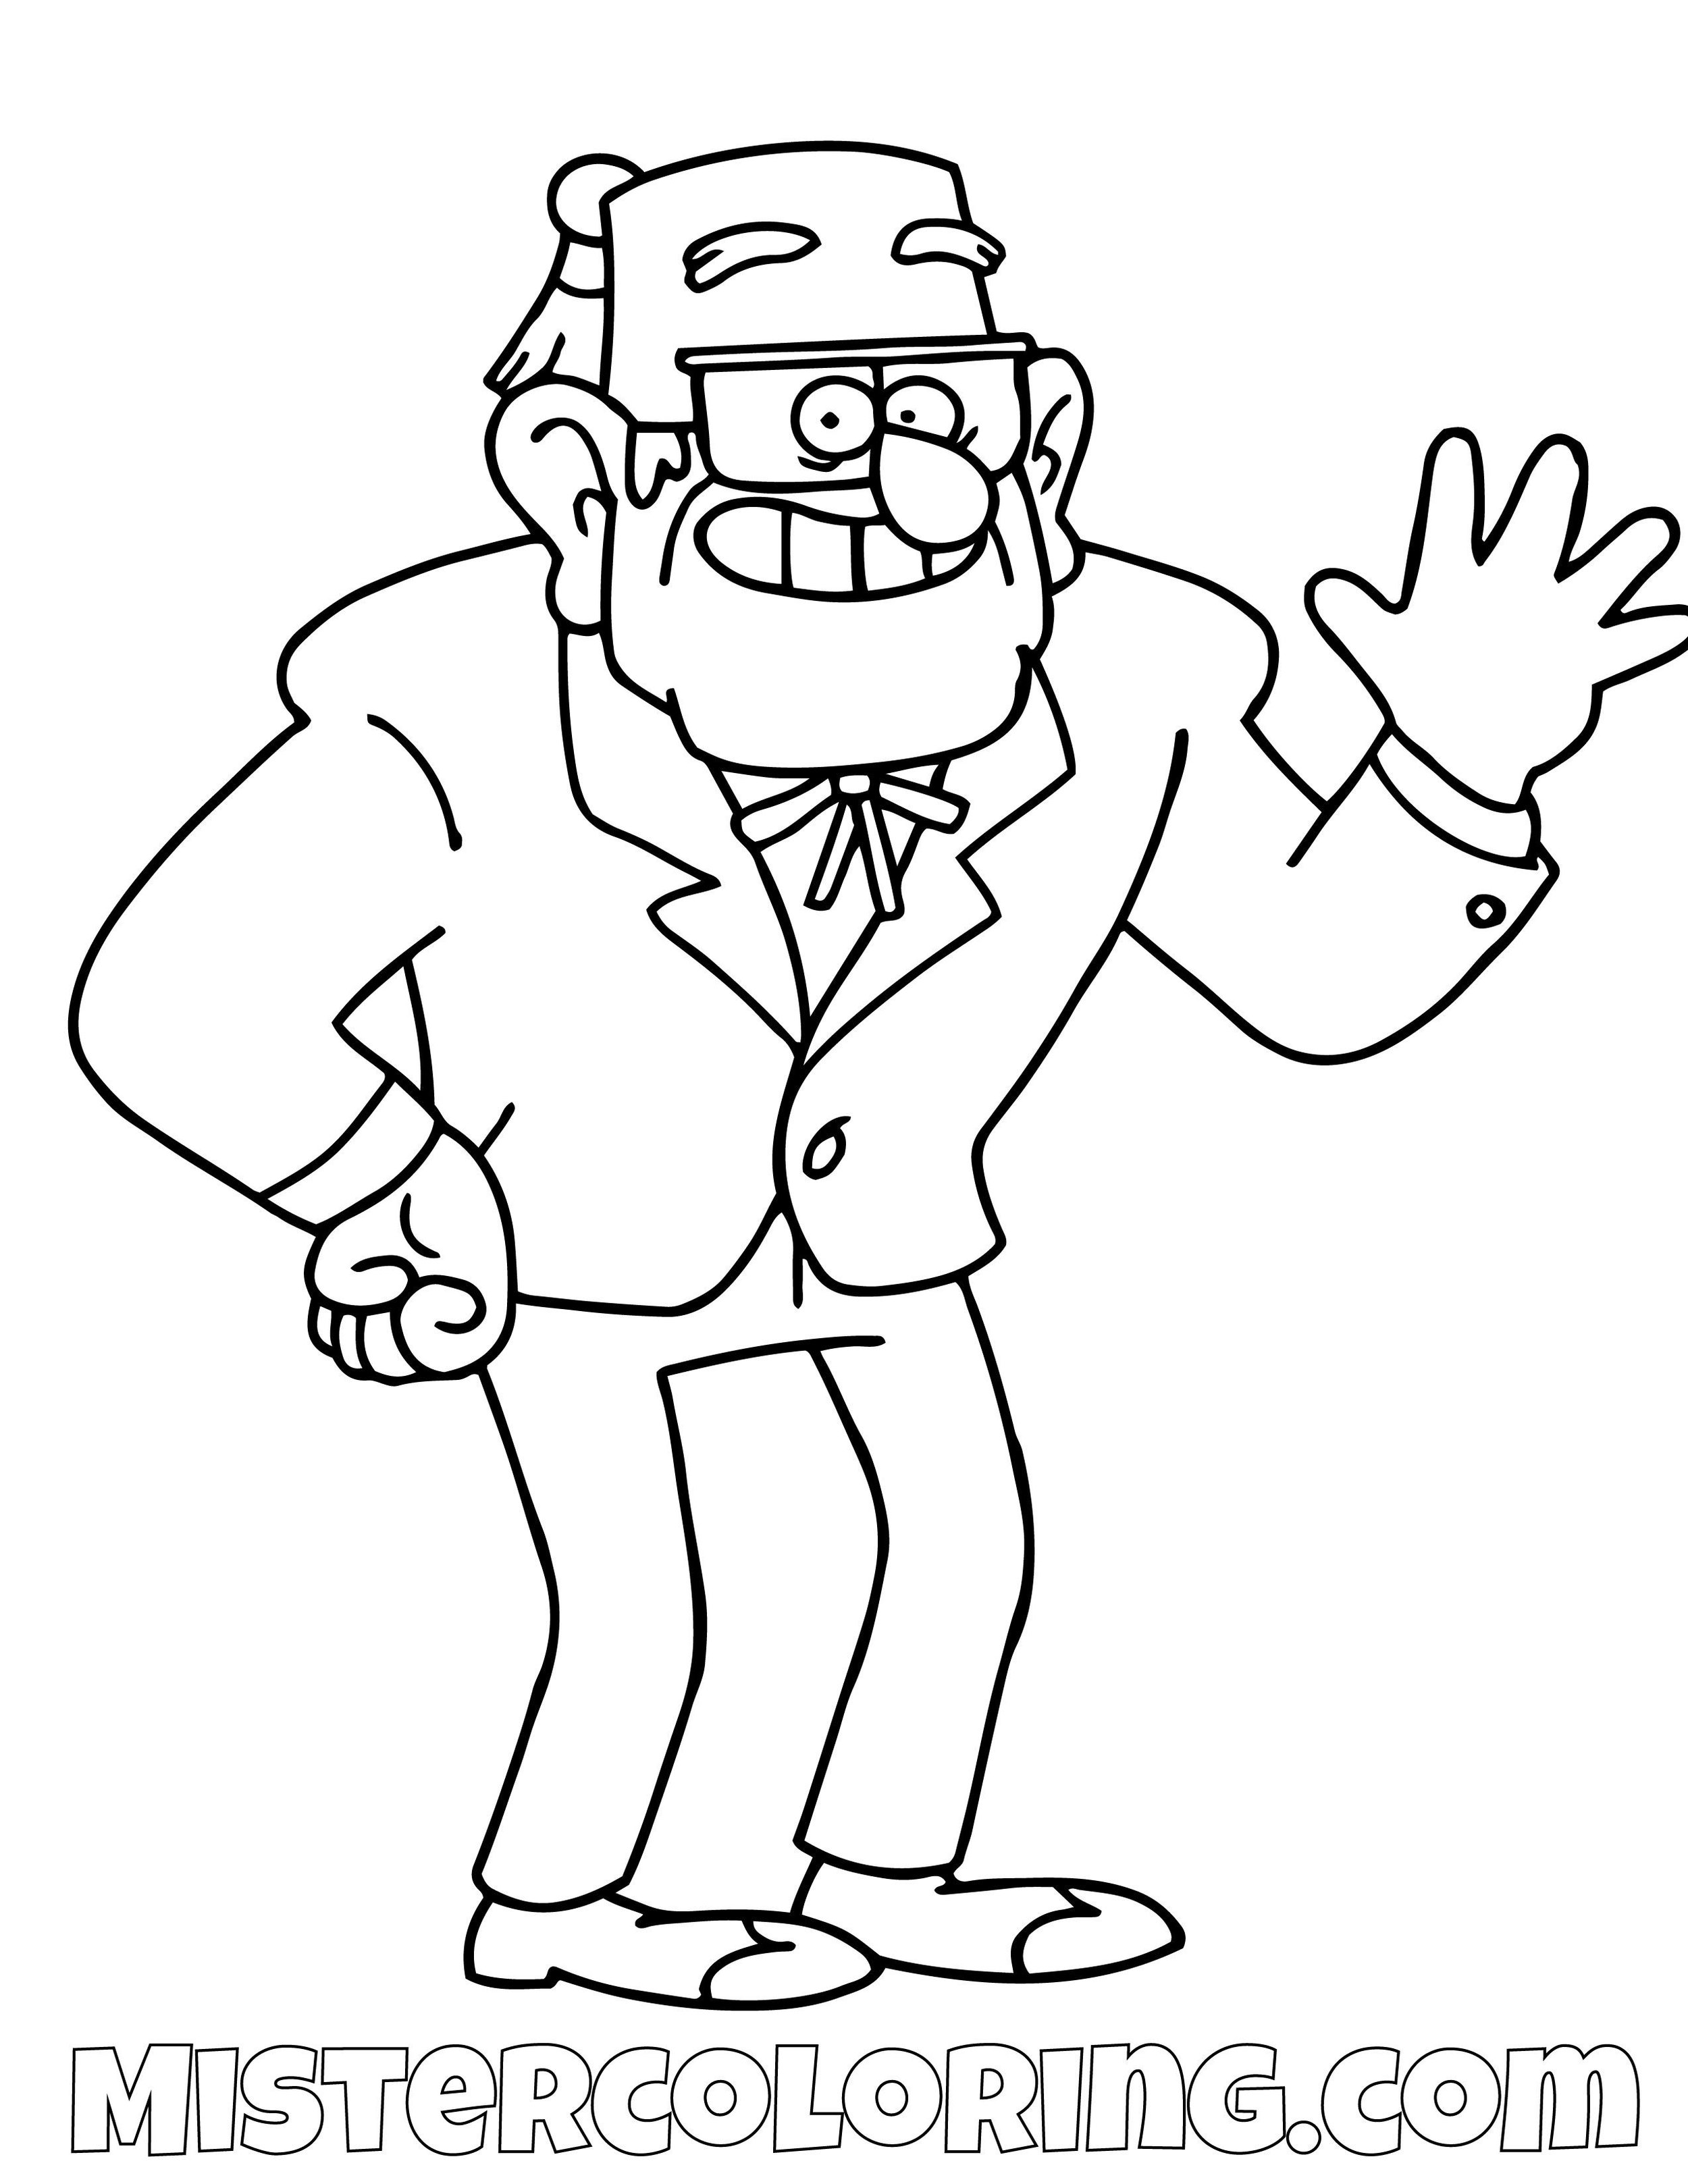 Grunkle Stan Gravity Falls Coloring Pages